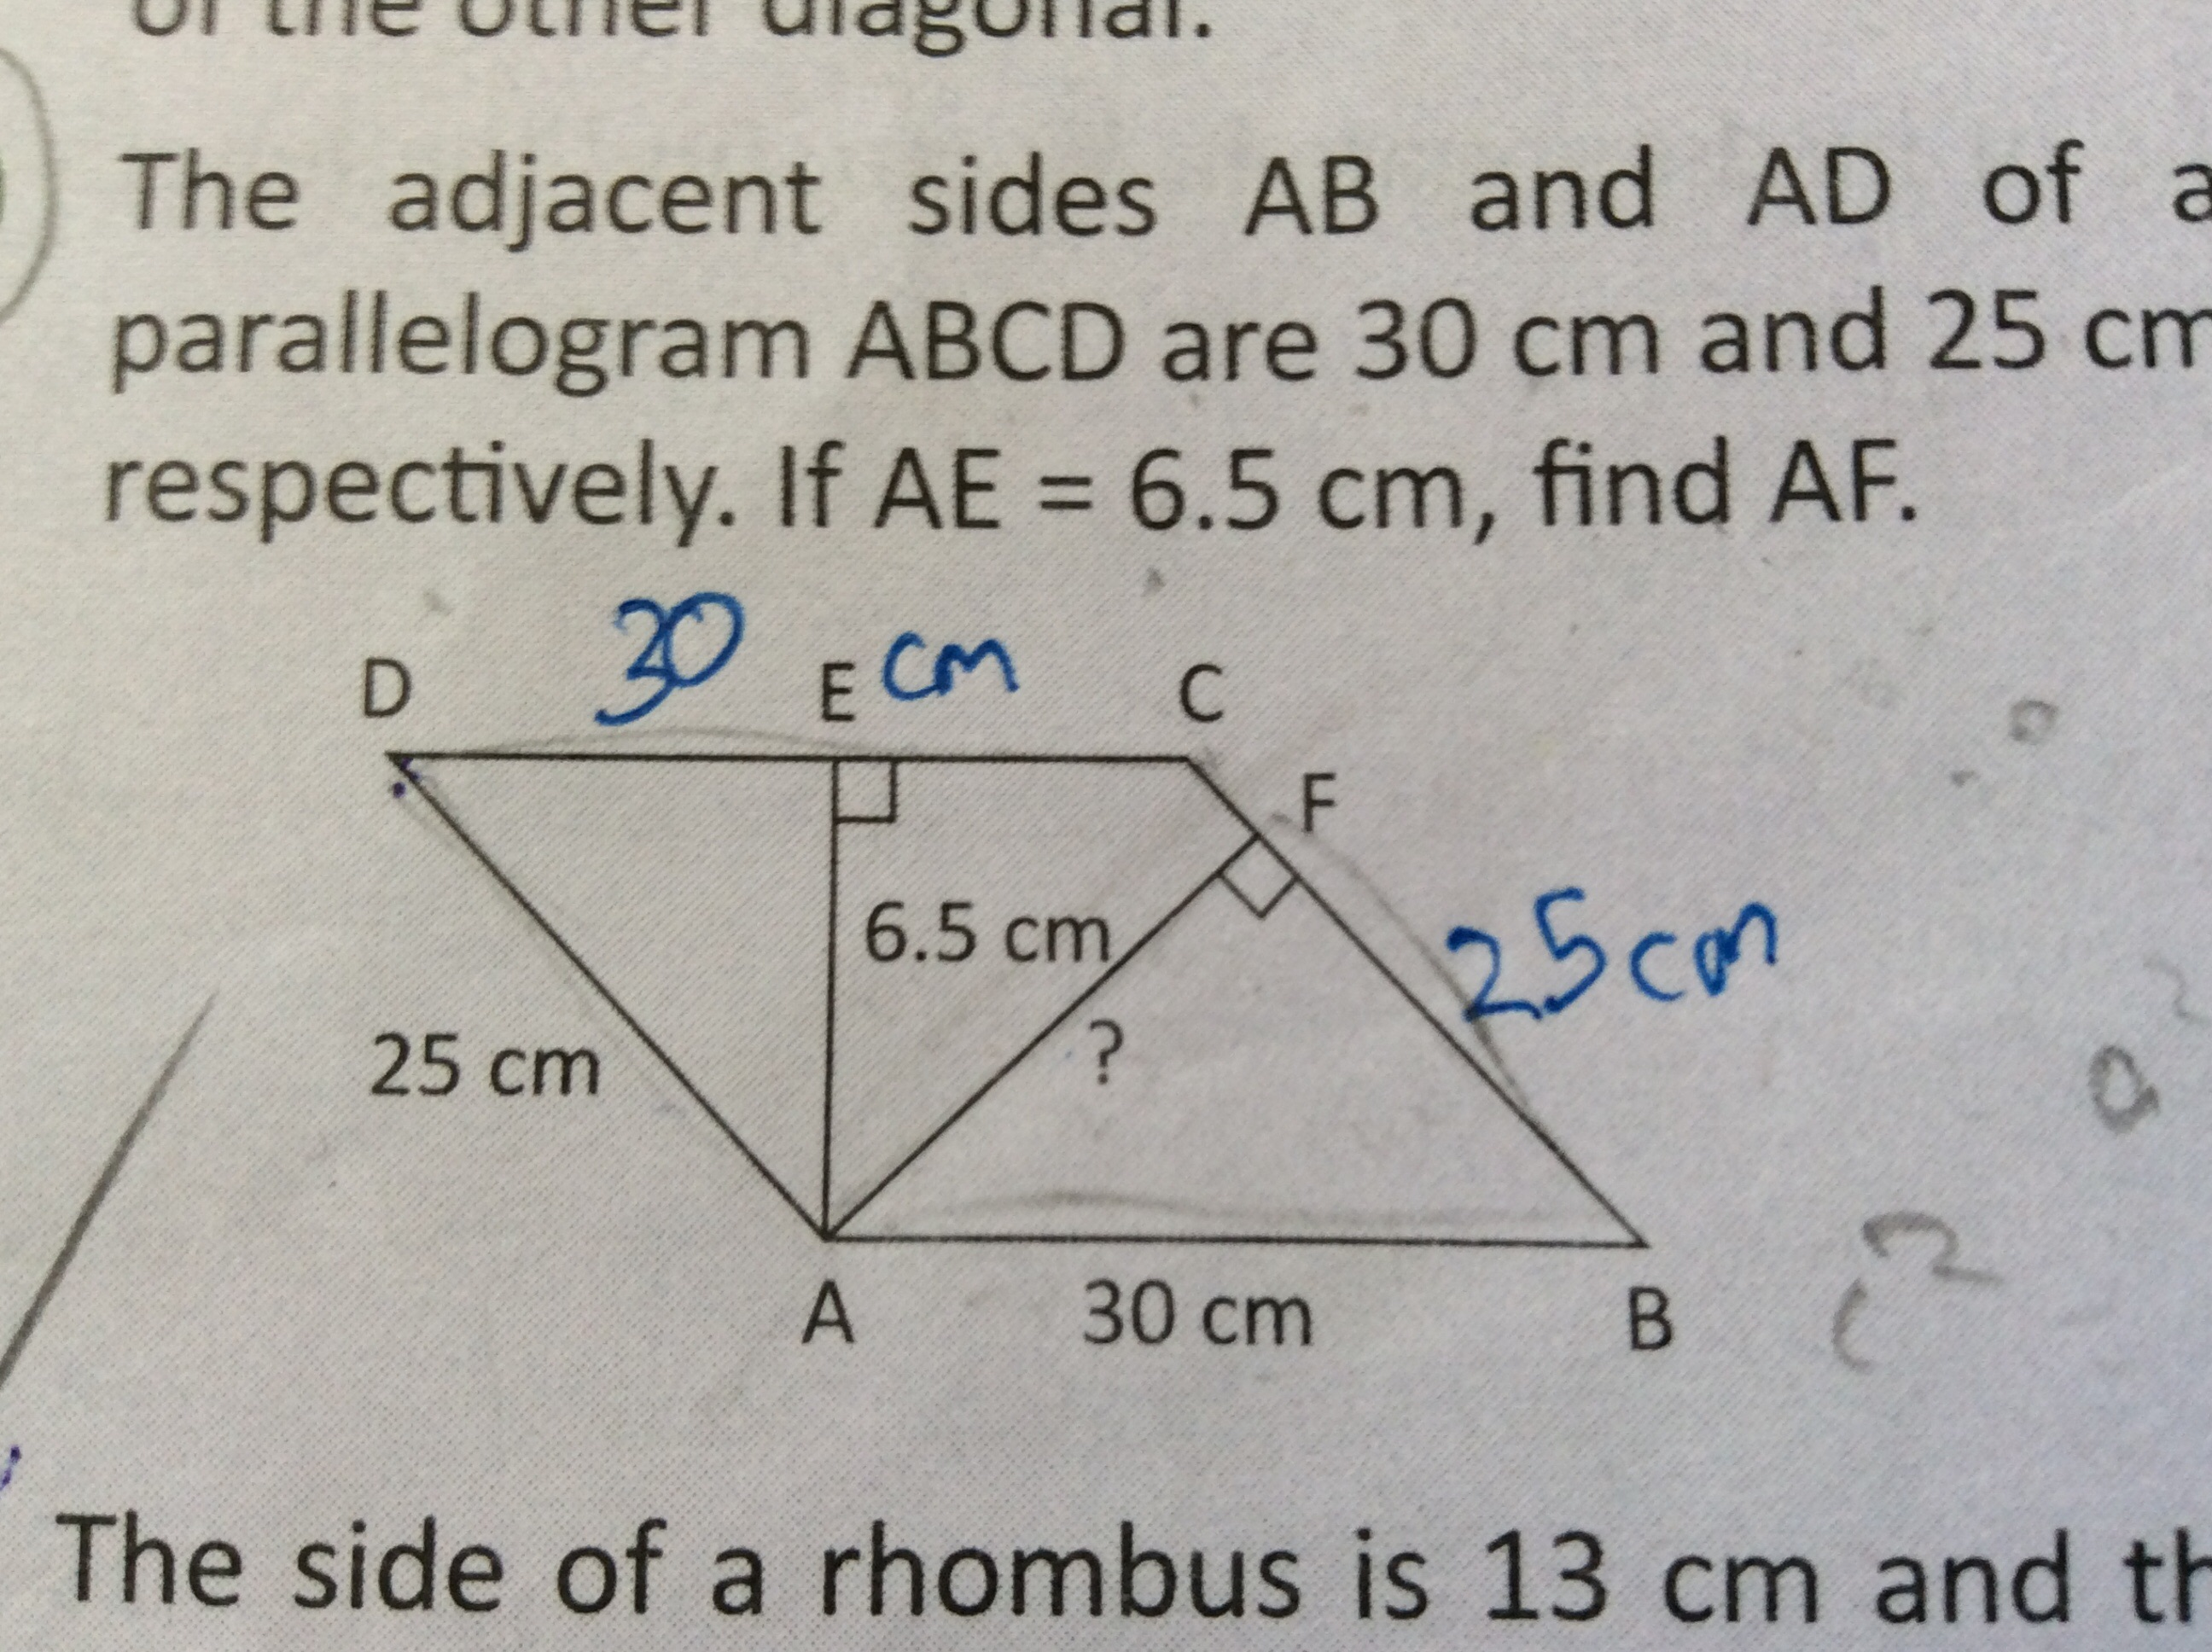 The adjacent sides Ab and Ad of a parallelogram ABCD are 30cm and 25cm respectively.If AE=6.5cm,find AF